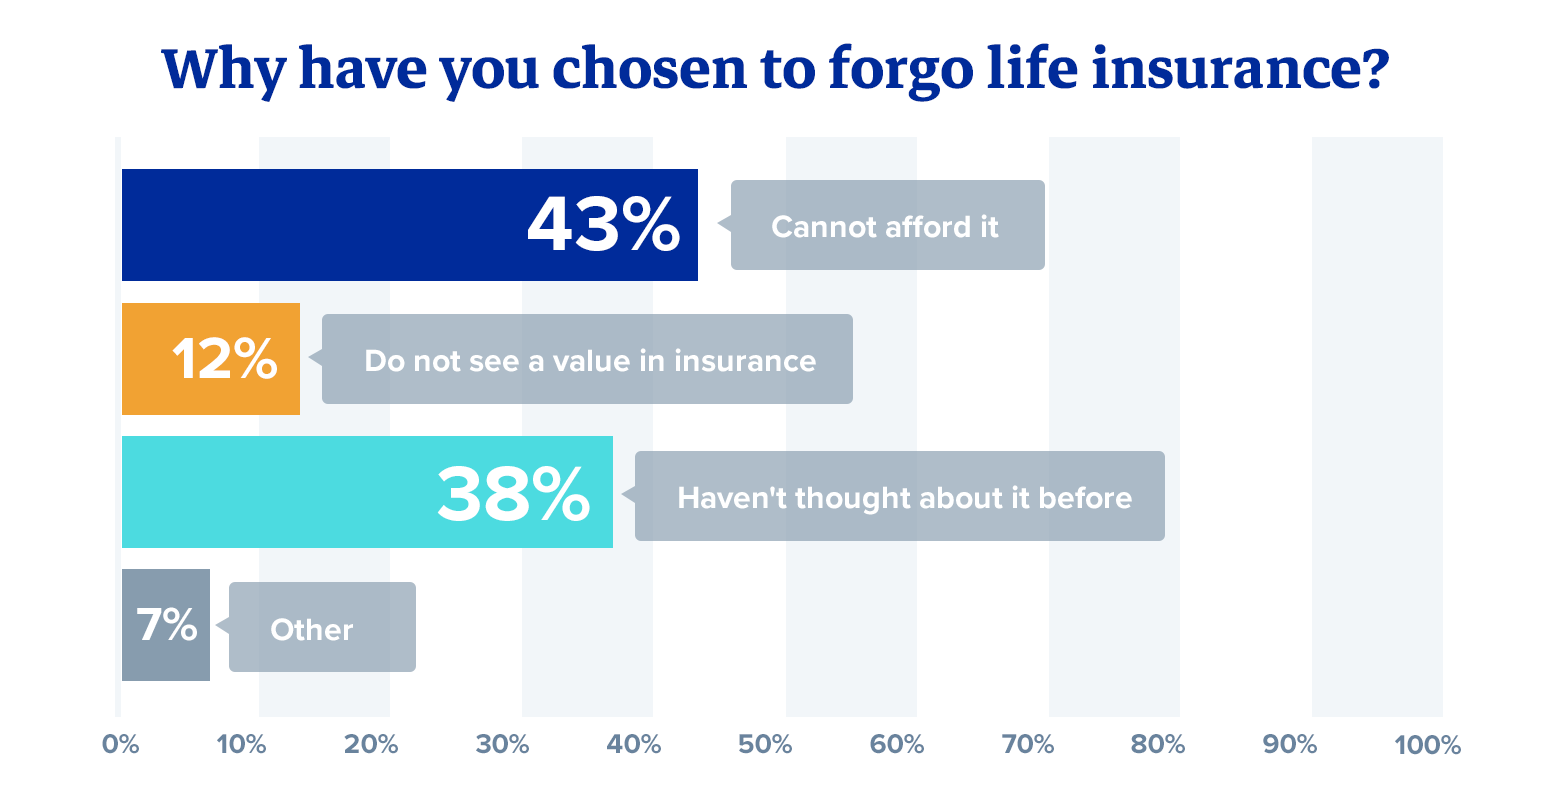 Why have you chosen to forgo life insurance?